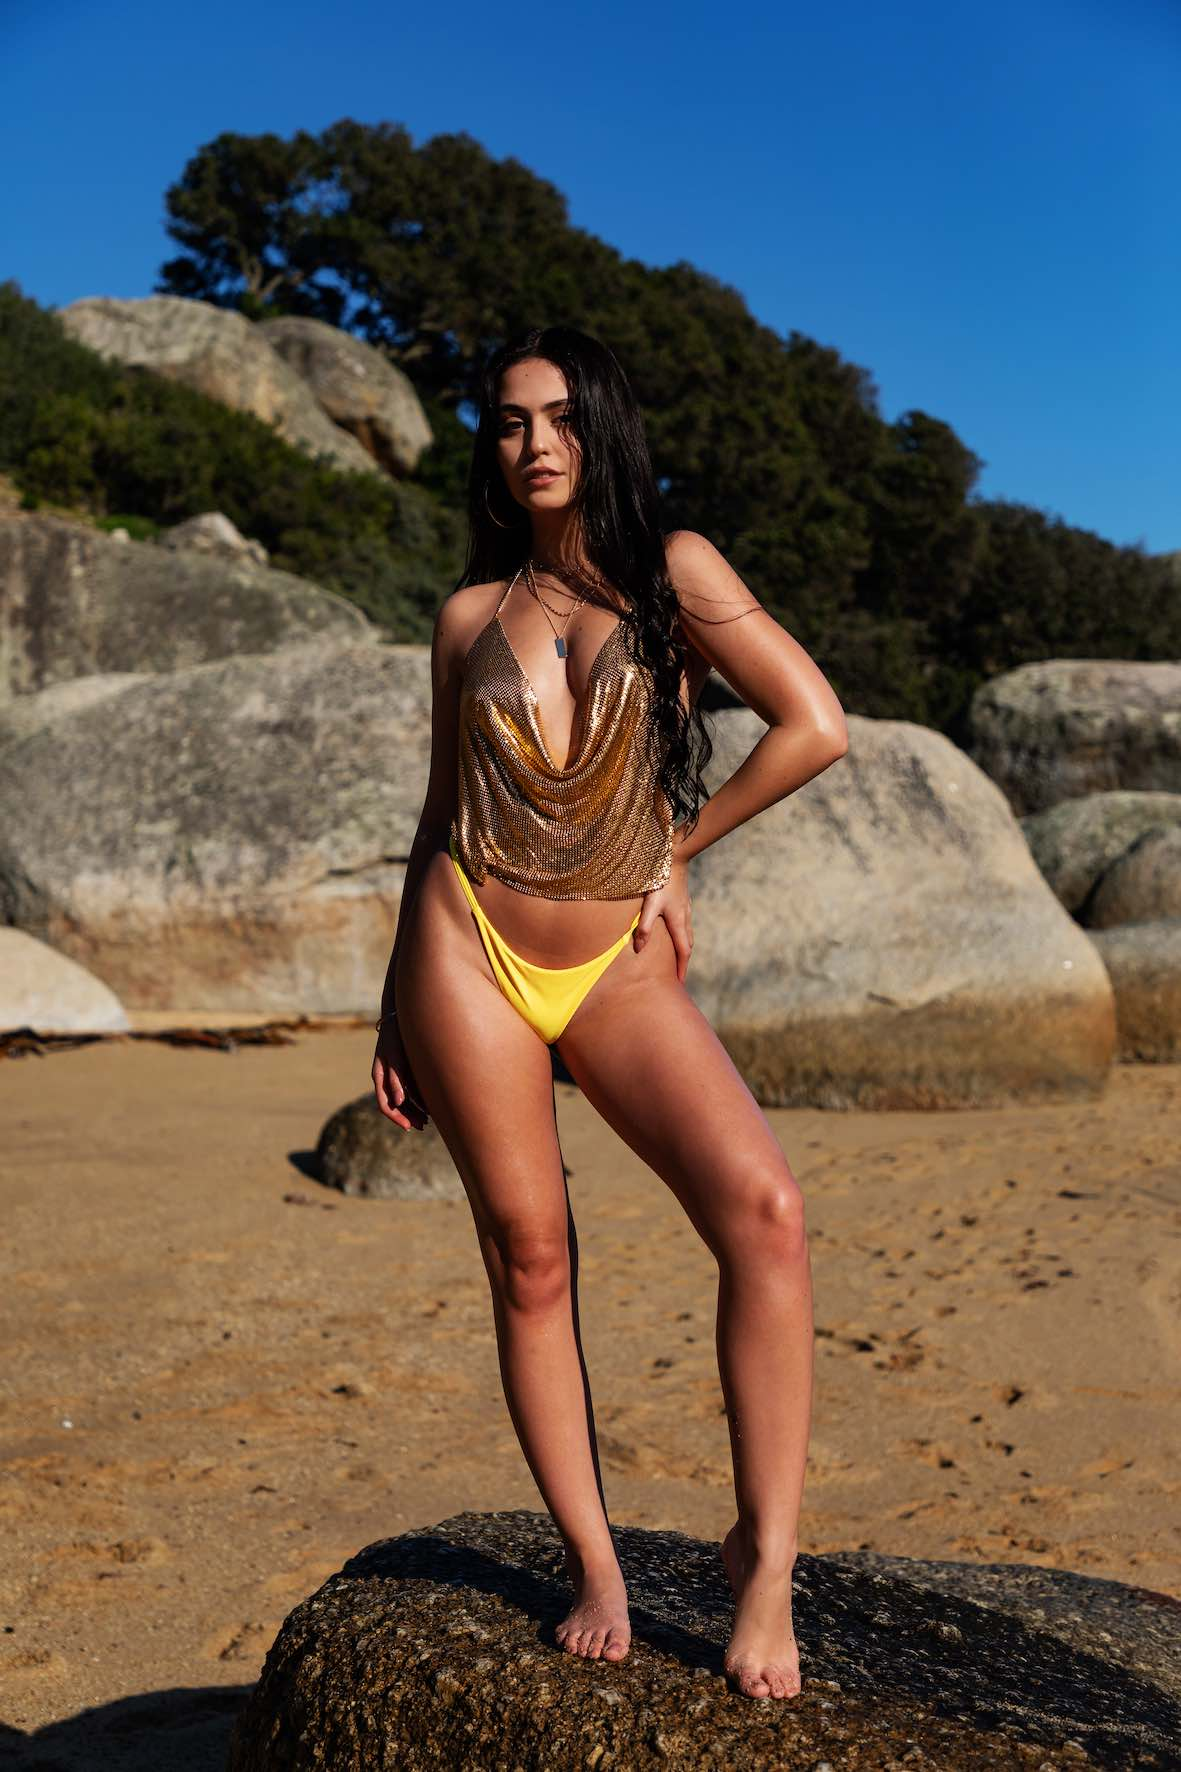 Our South African Girls feature with Mai Sayag